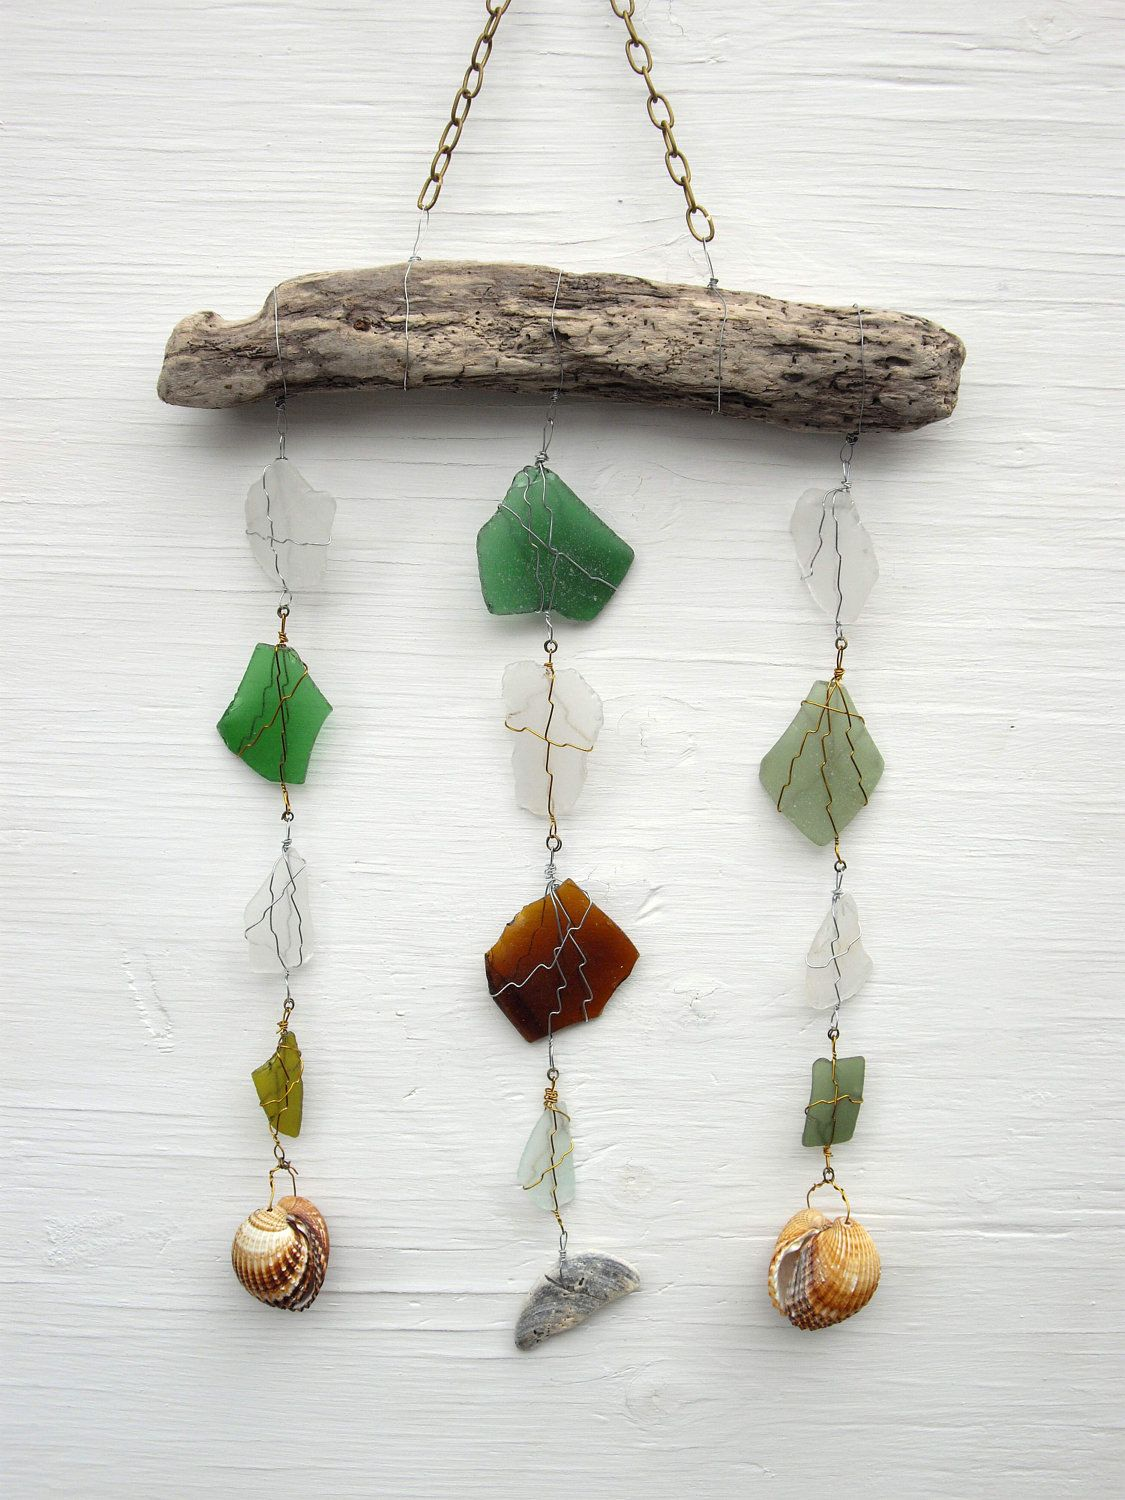 Driftwood & Sea Glass Mobile windchime. £14.95, via Etsy. #handmade #driftwood #seaglass